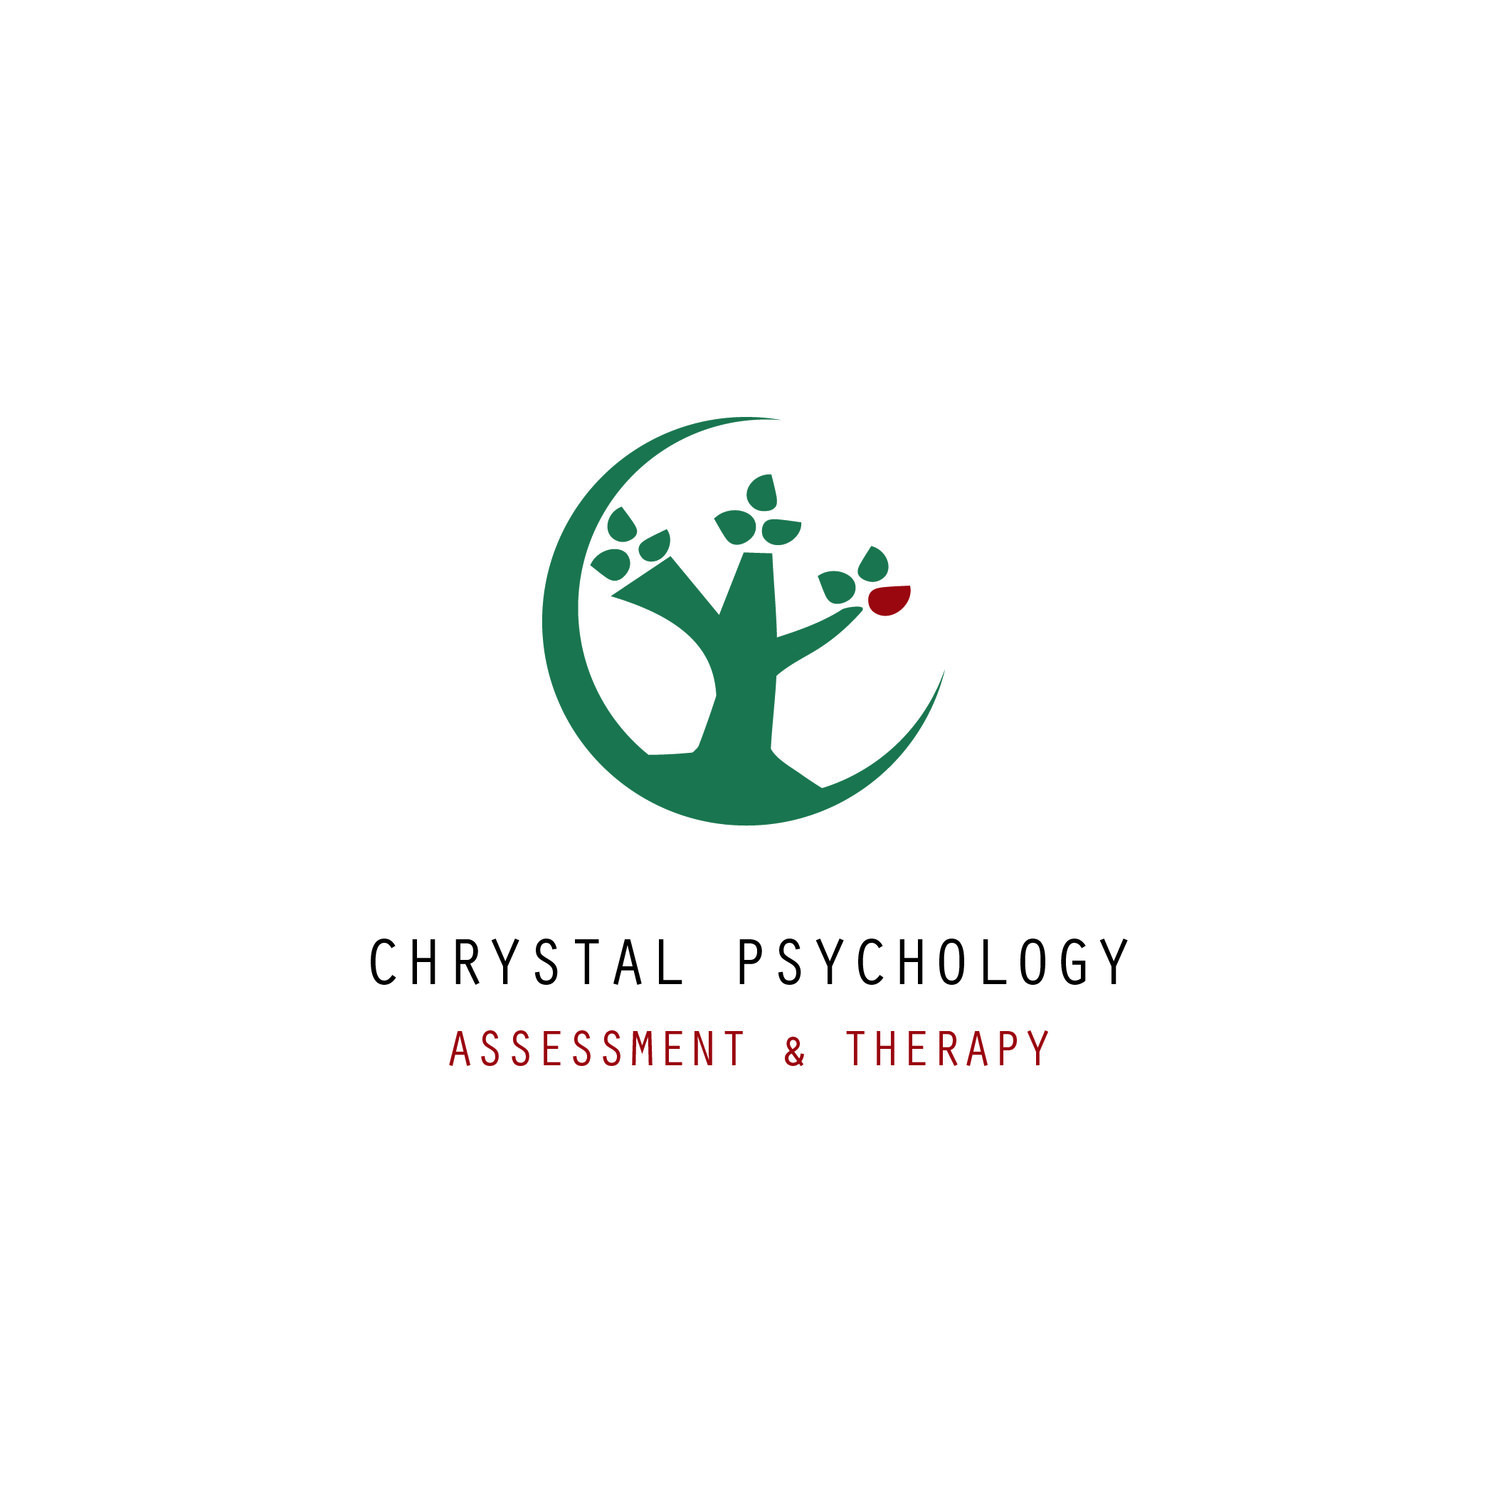 Chrystal Psychology